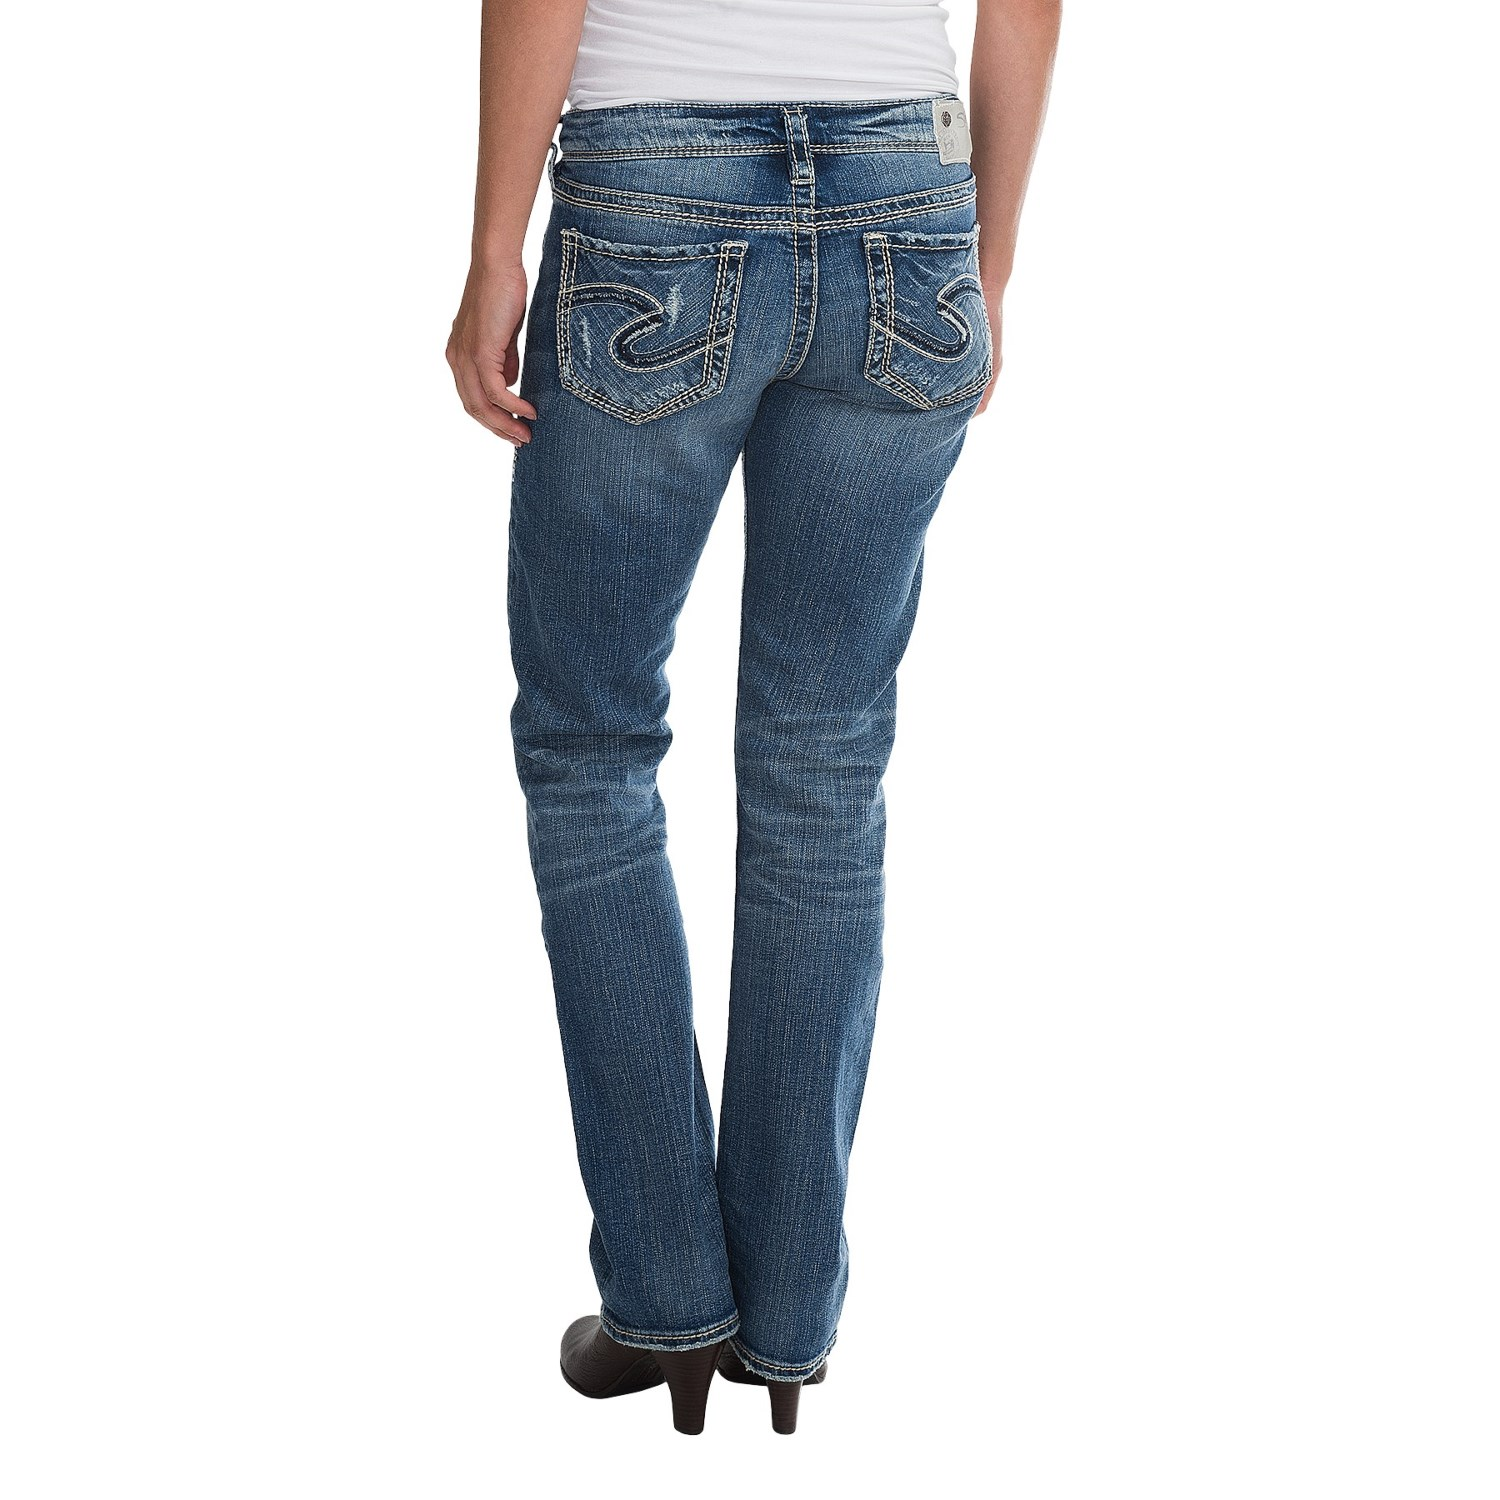 Silver Jeans Clearance - Jeans Am